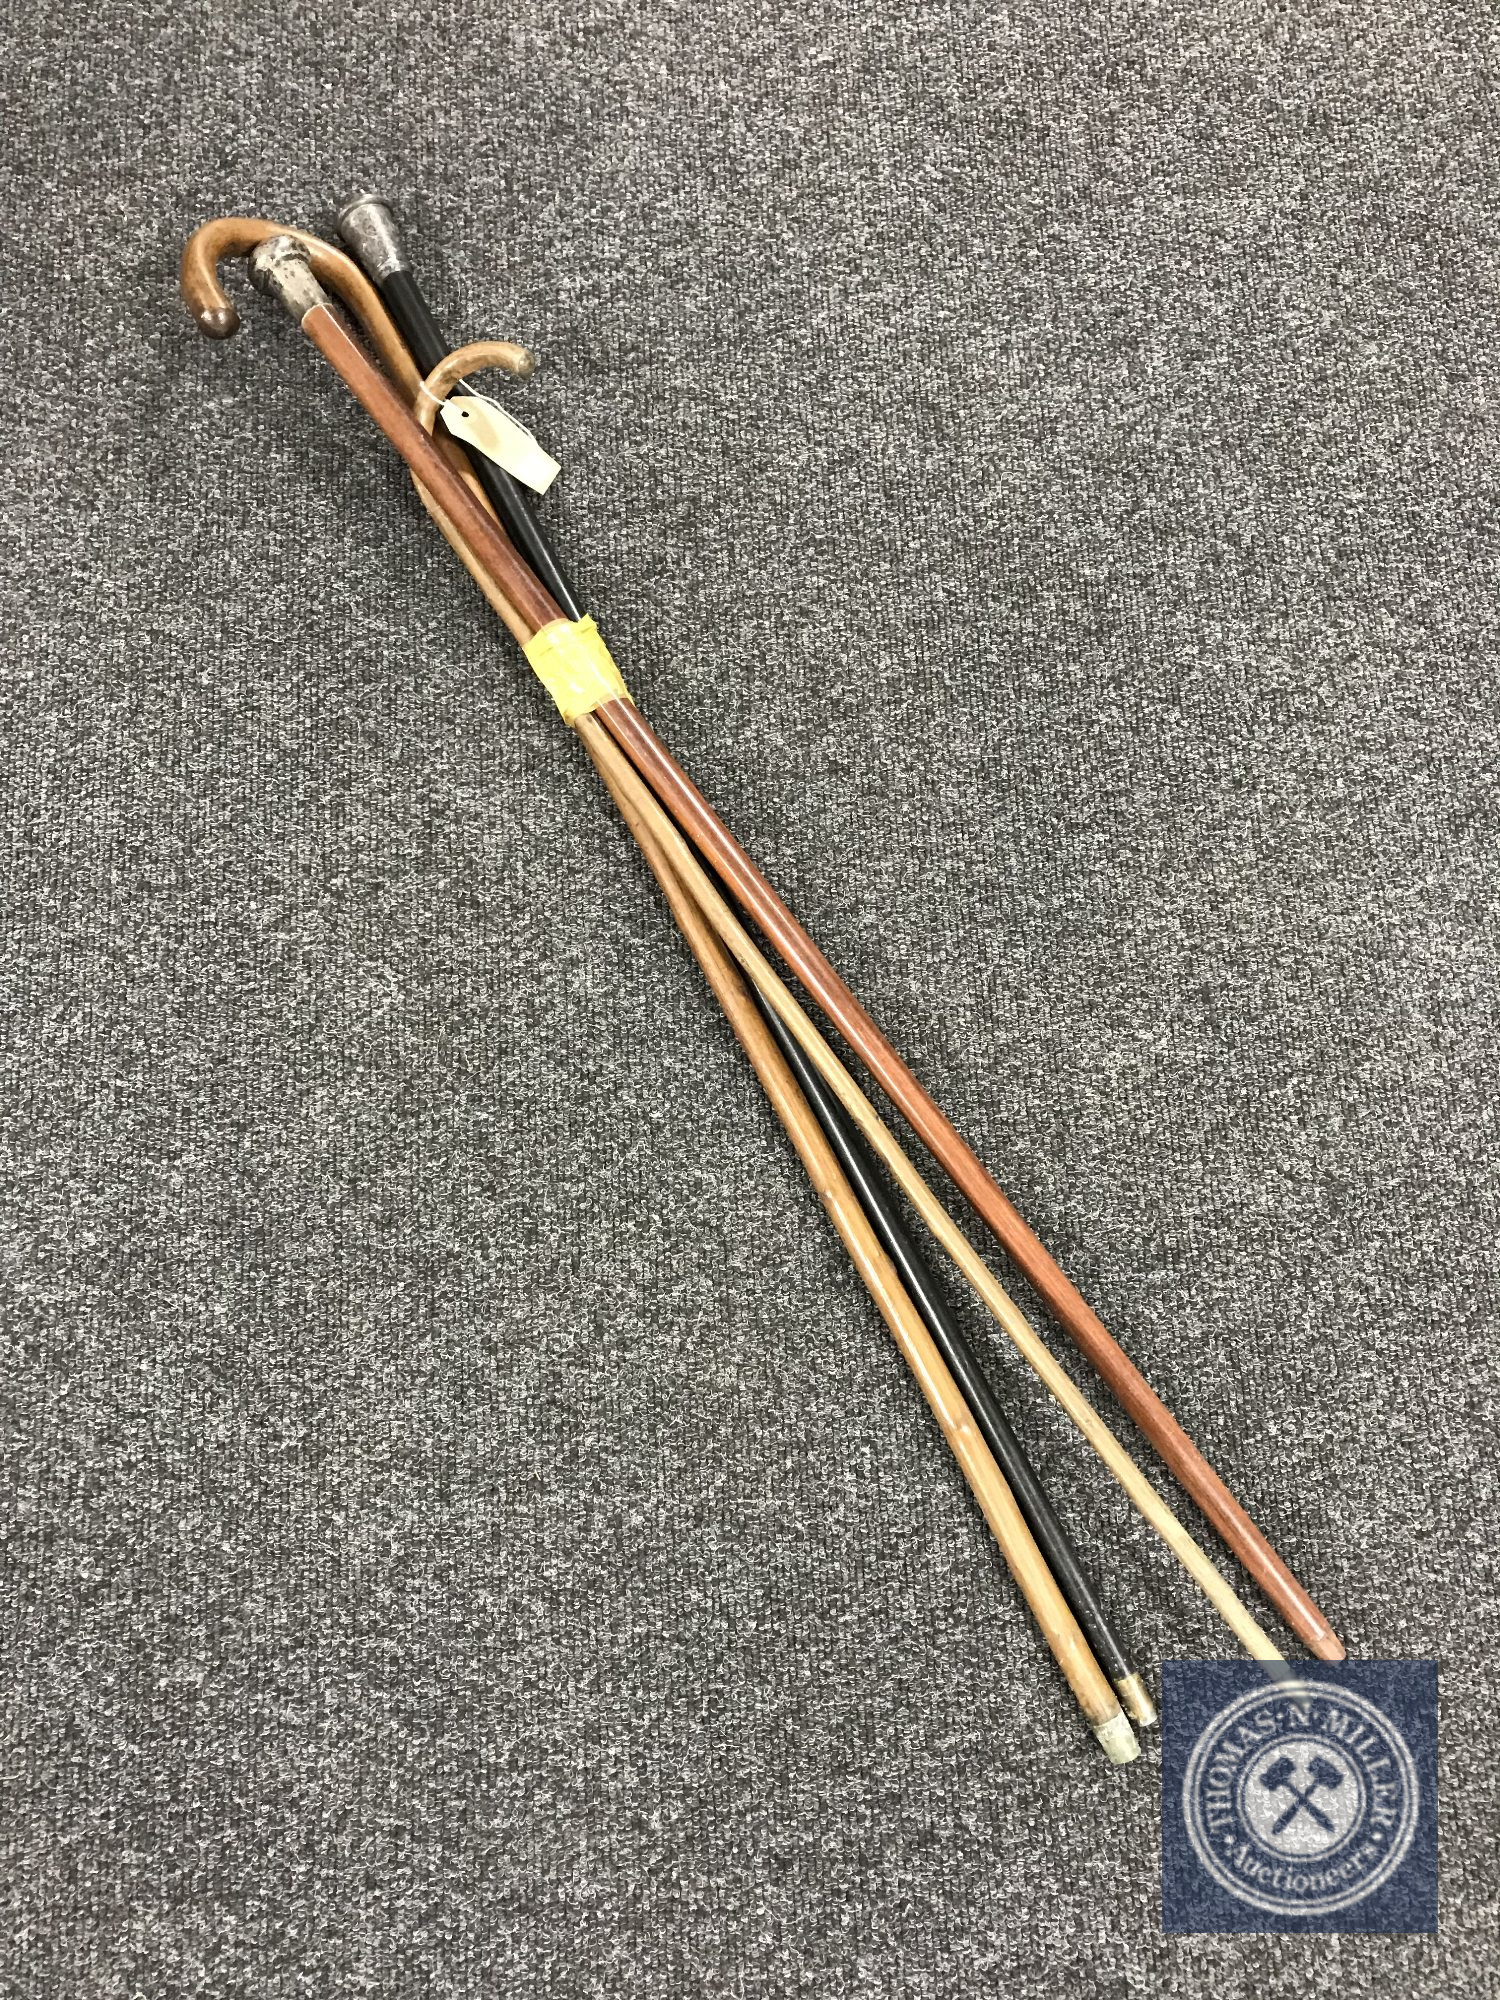 Lot 24 - Two walking sticks together with two walking canes with silver mounts